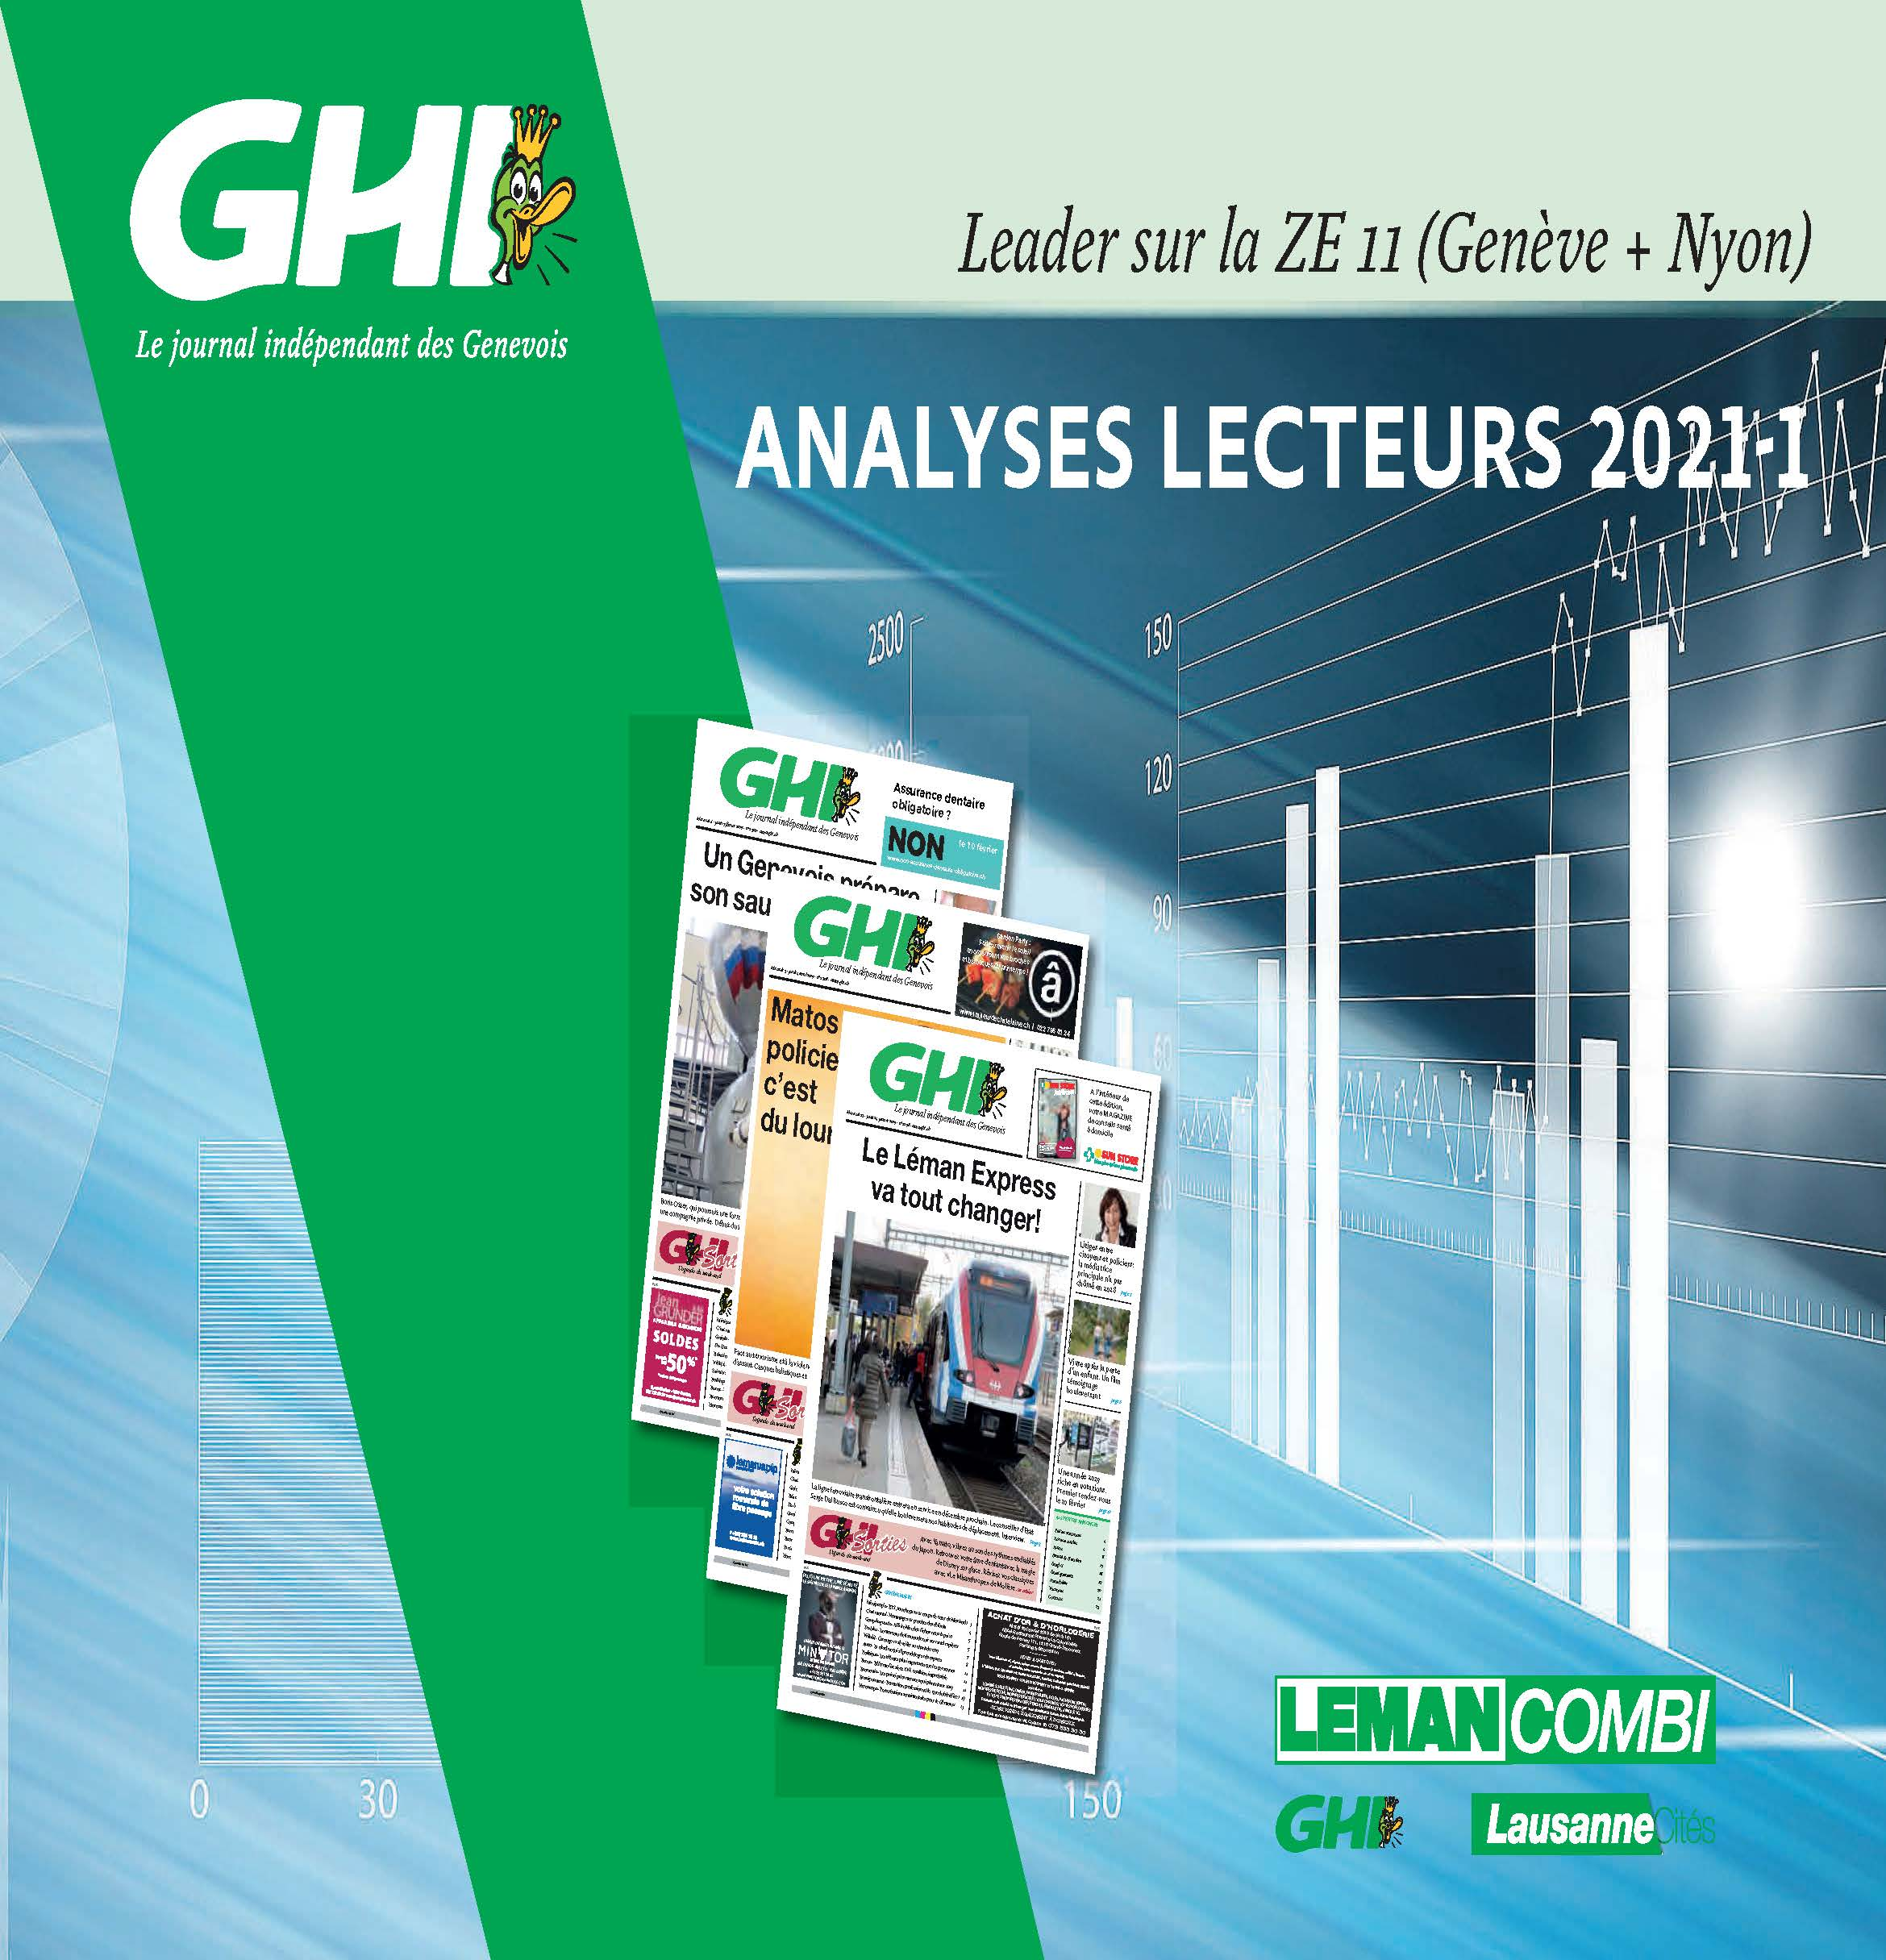 Analyses lecteurs GHI 2020-1